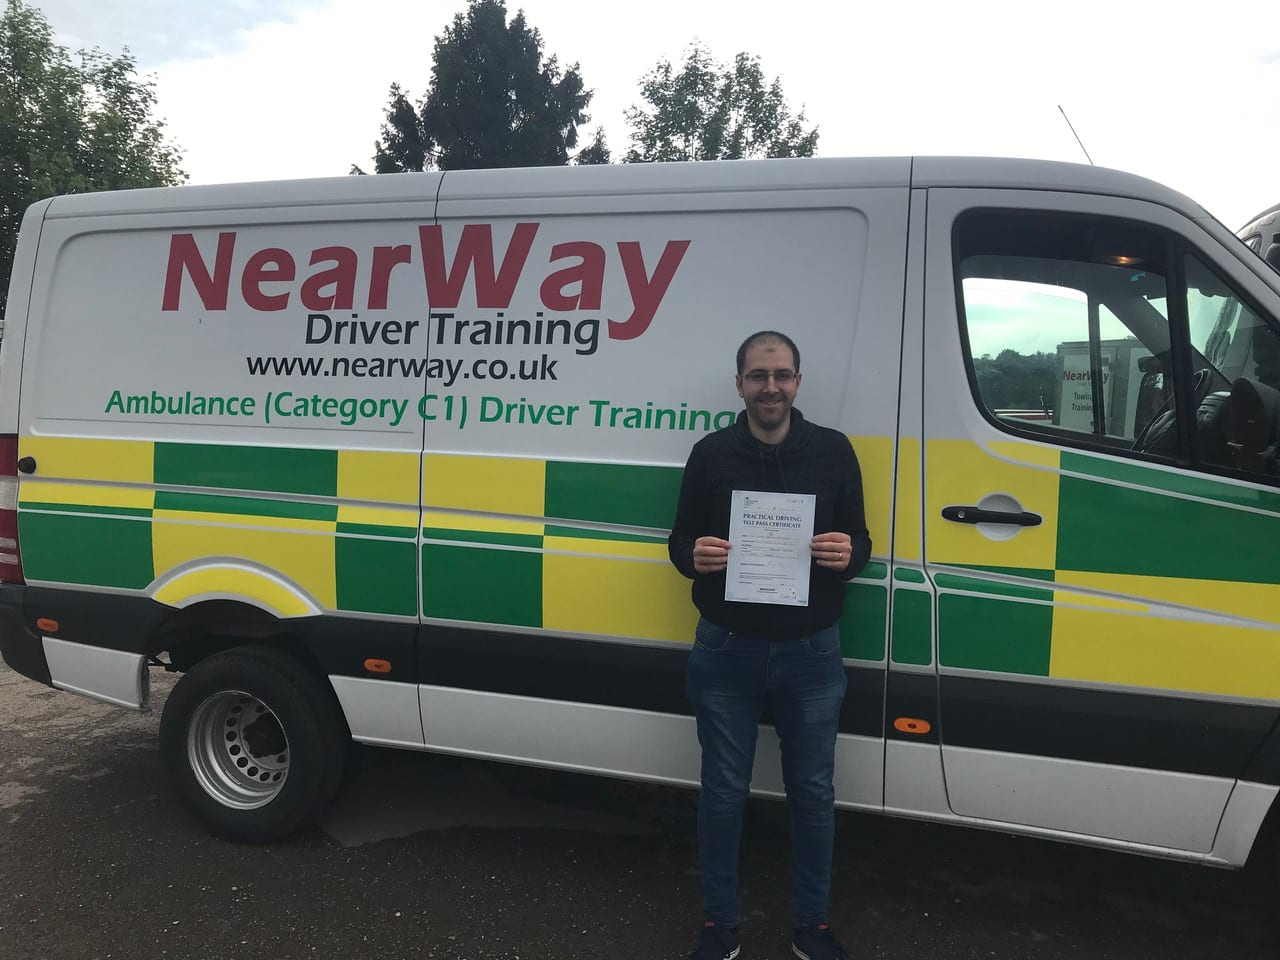 Garry Pamment C1 Ambulance Driving Test